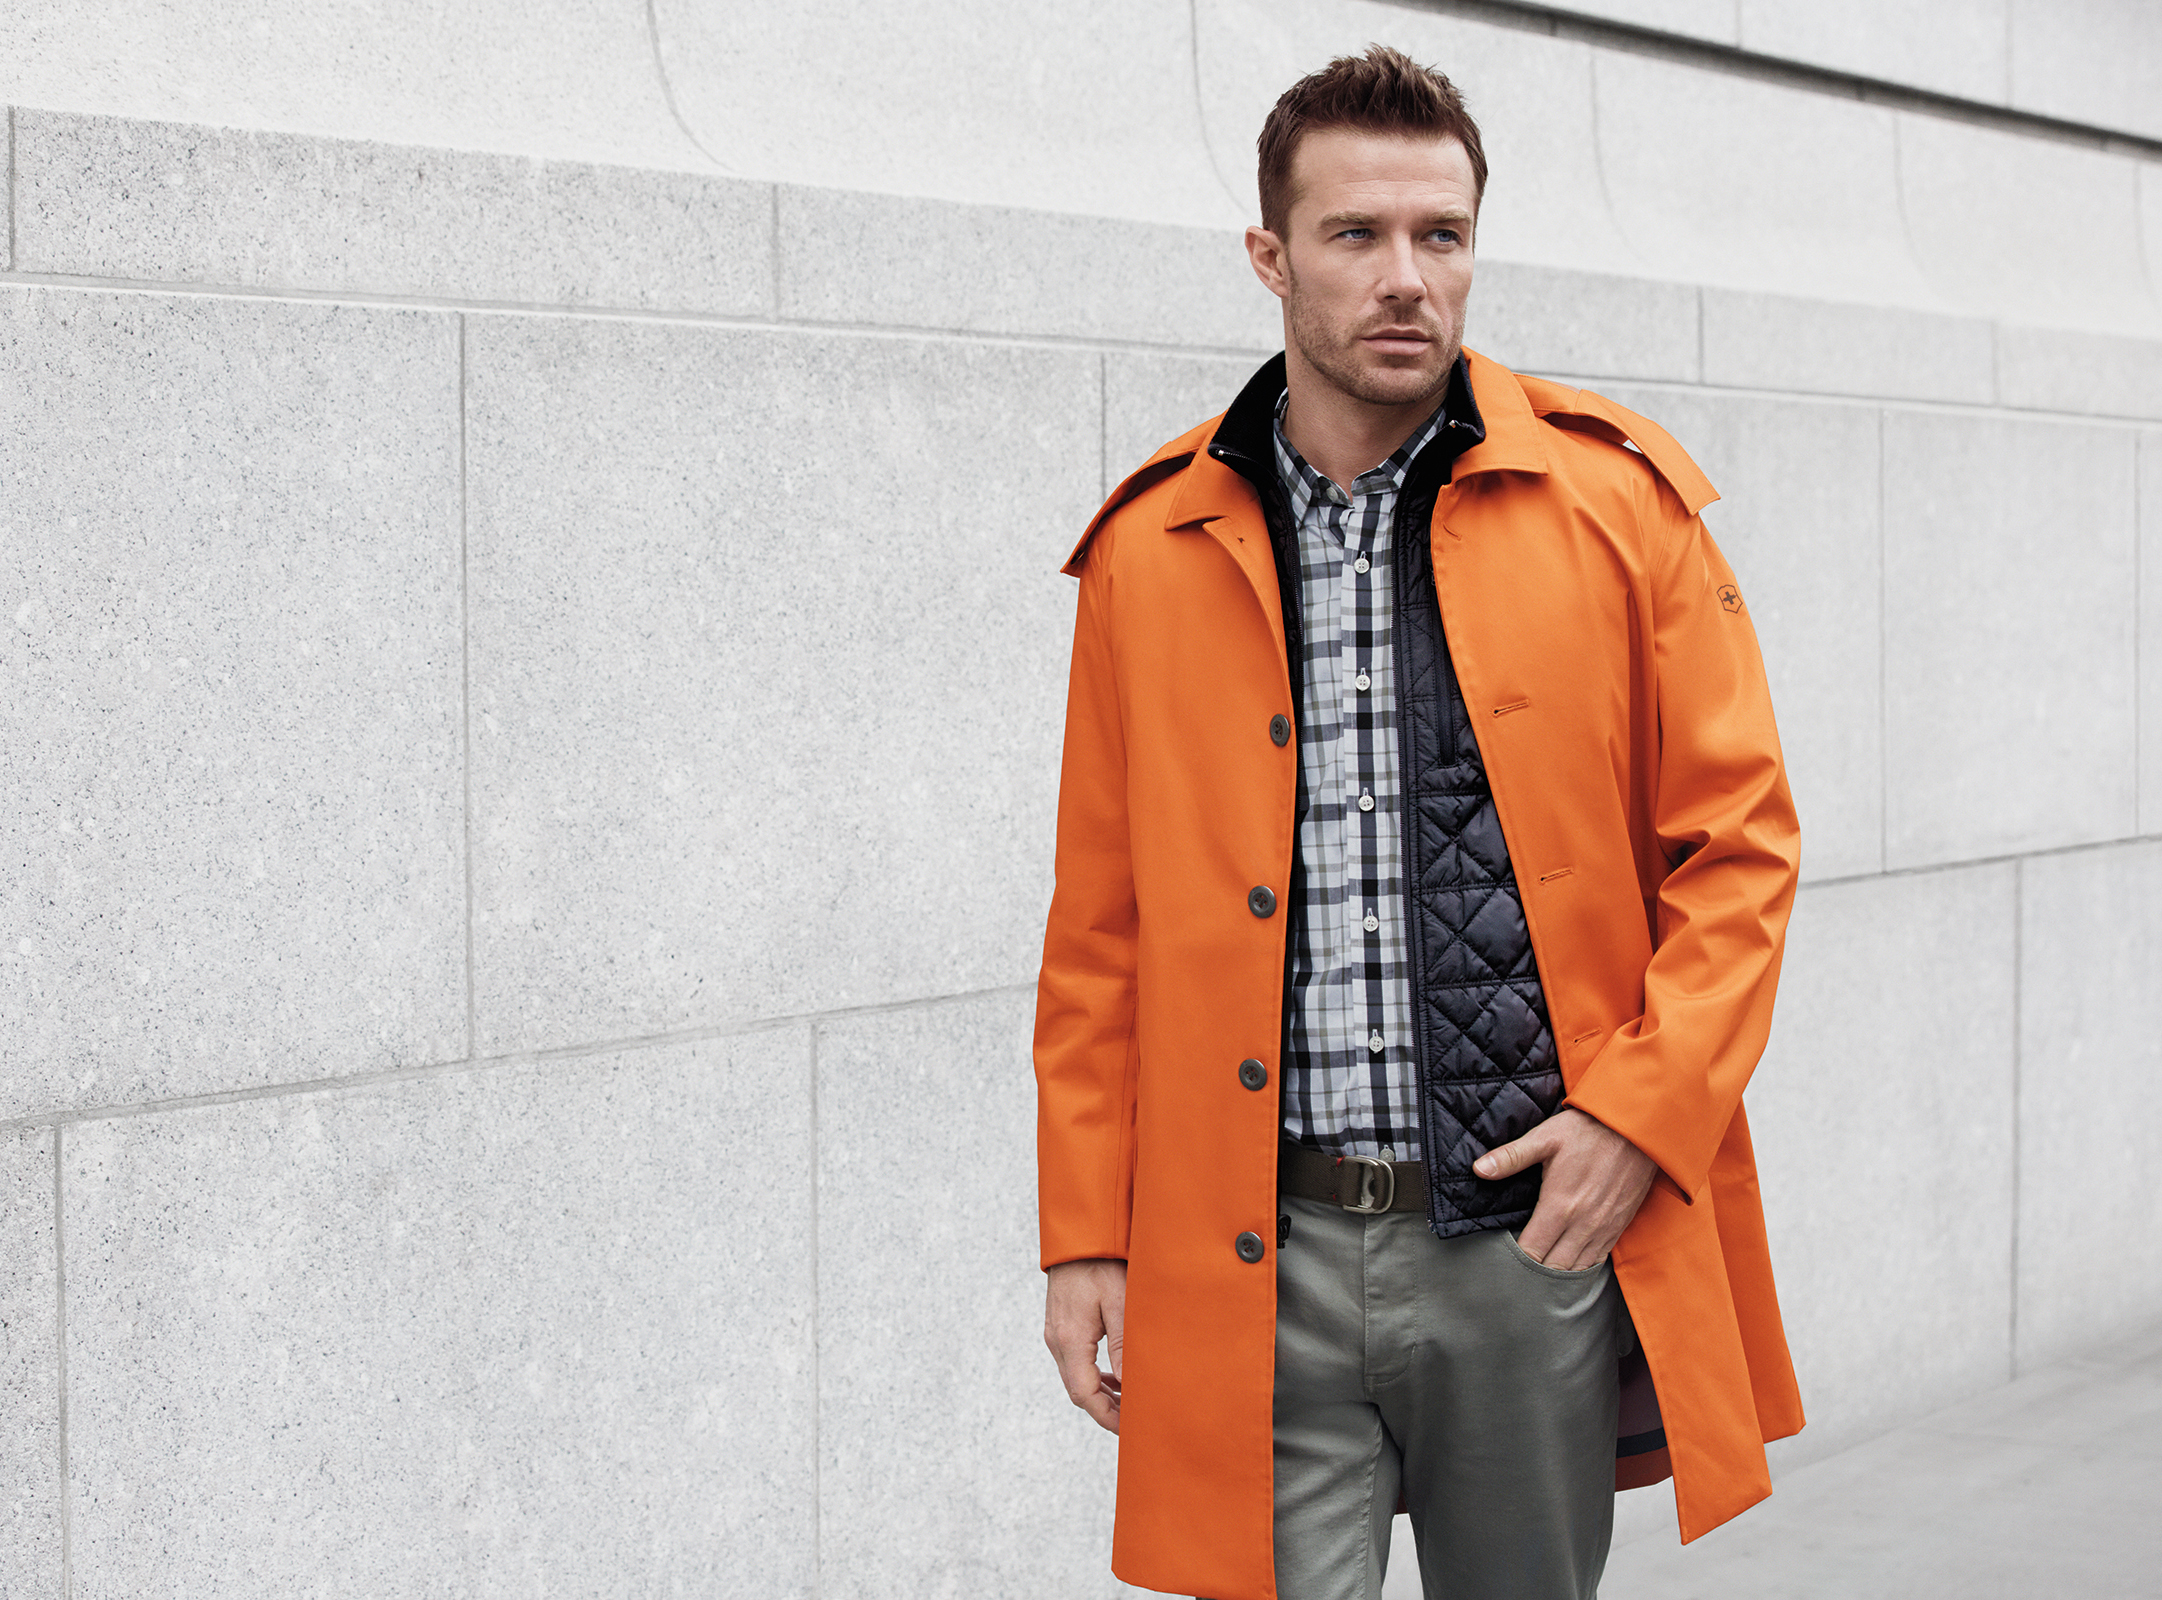 db7c69eed91 New high-tech raincoats for men | How To Spend It